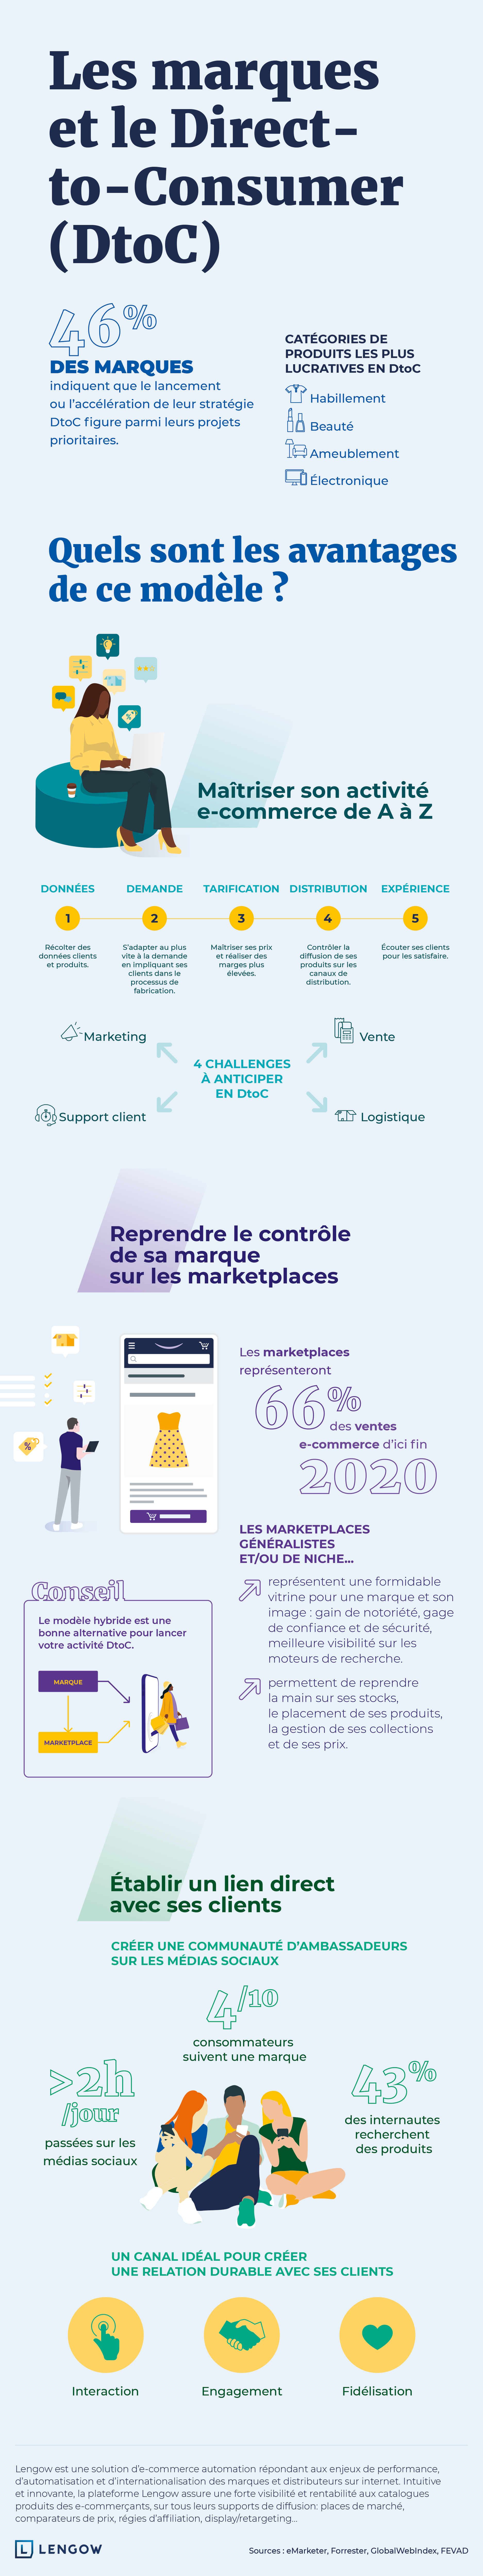 Infographie_DtoC_Lengow